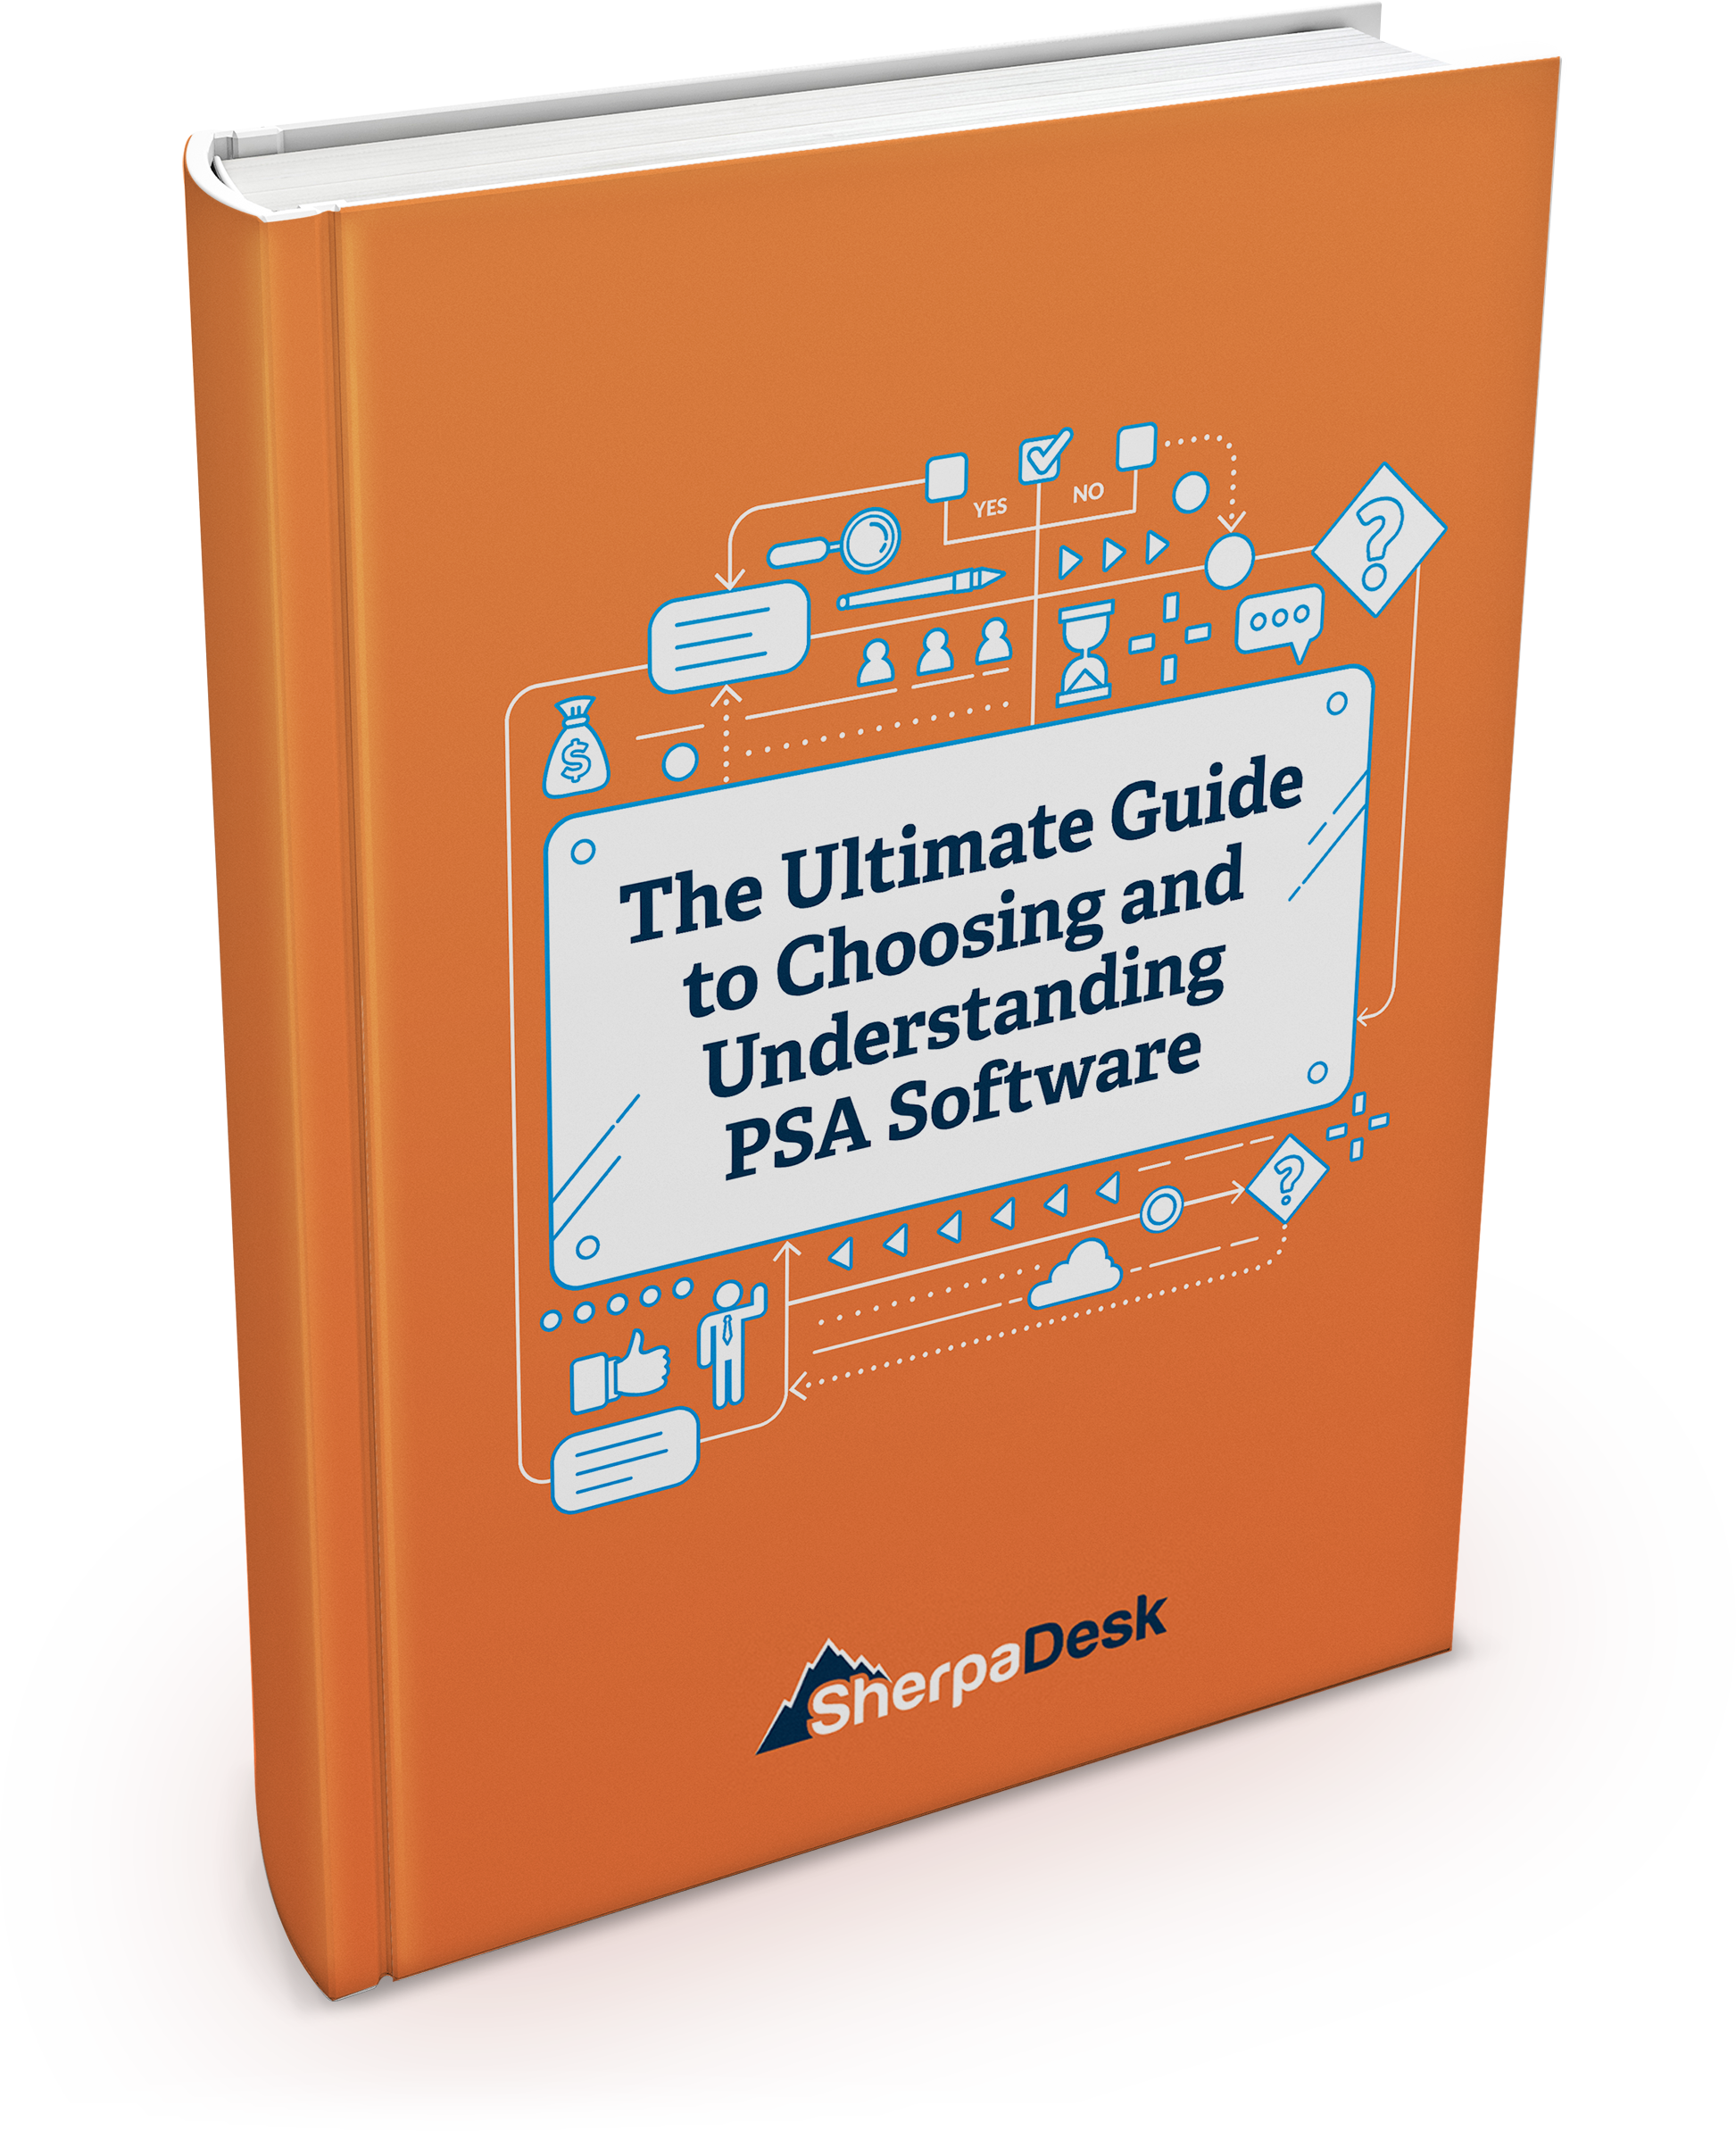 The Ultimate Guide PSA Software_Book.png